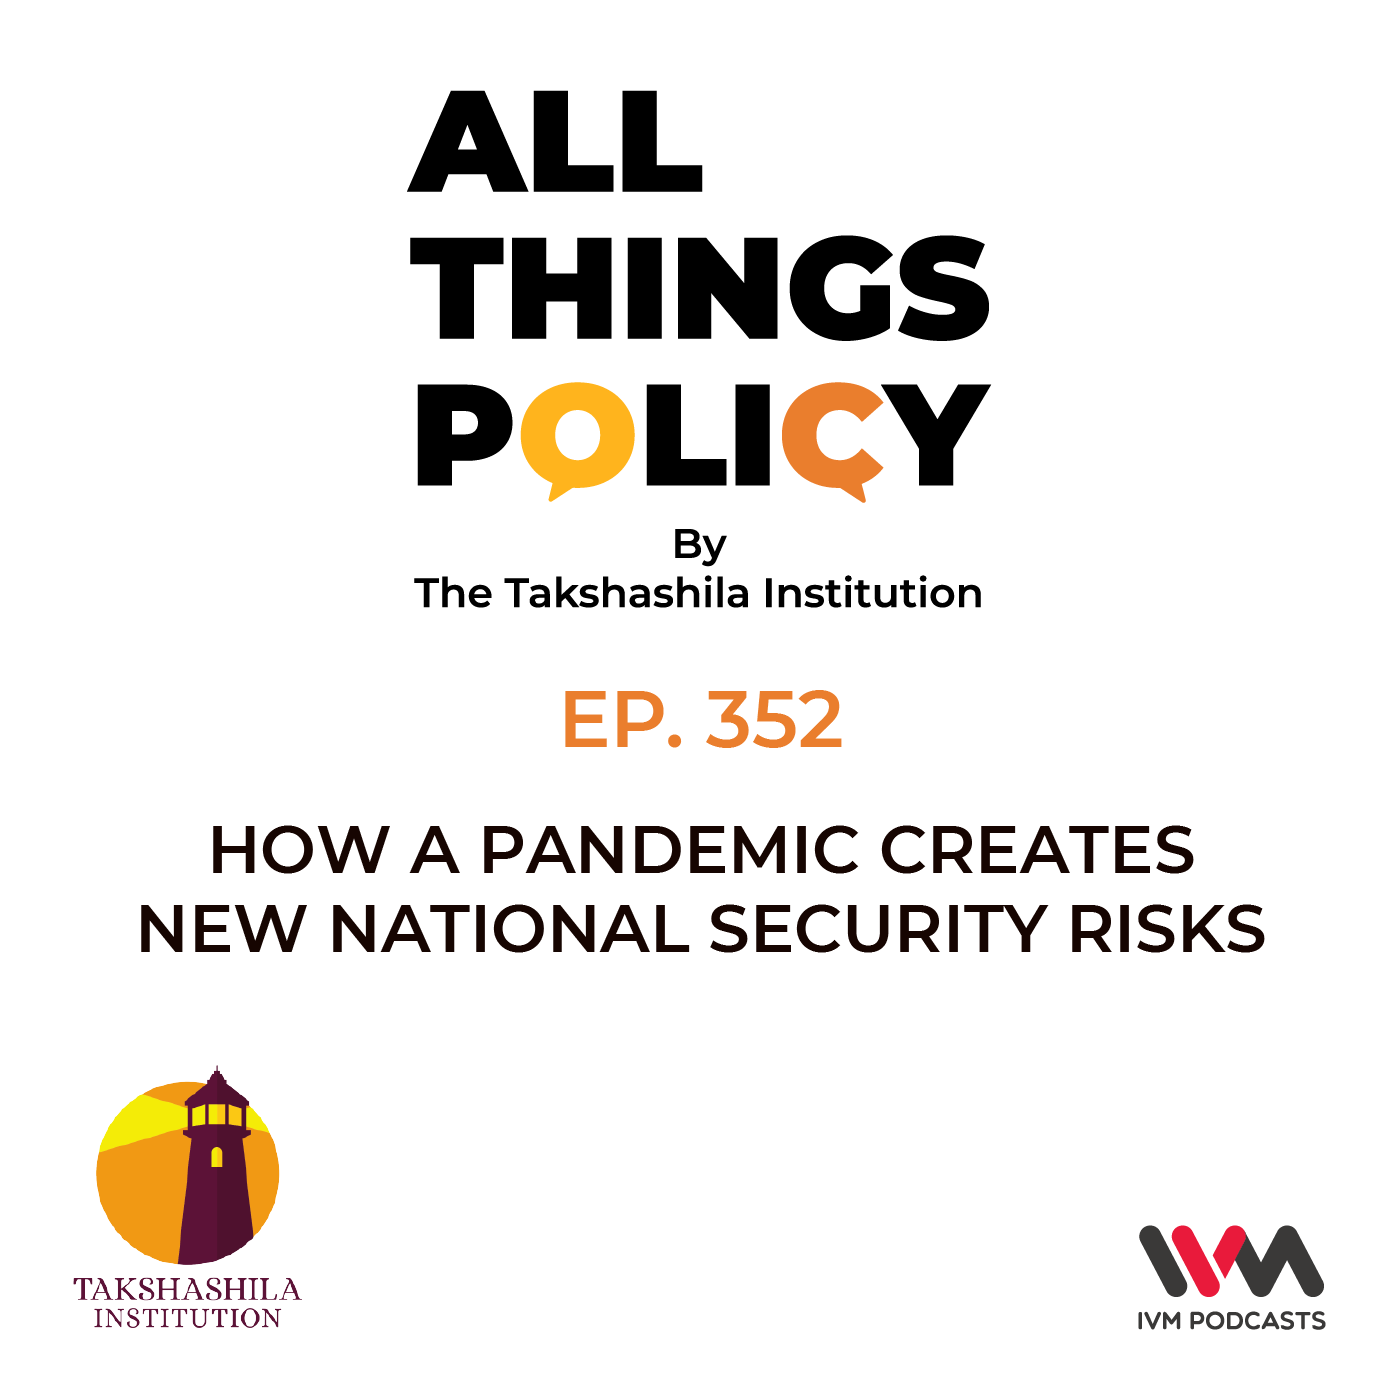 Ep. 352: How a Pandemic Creates New National Security Risks